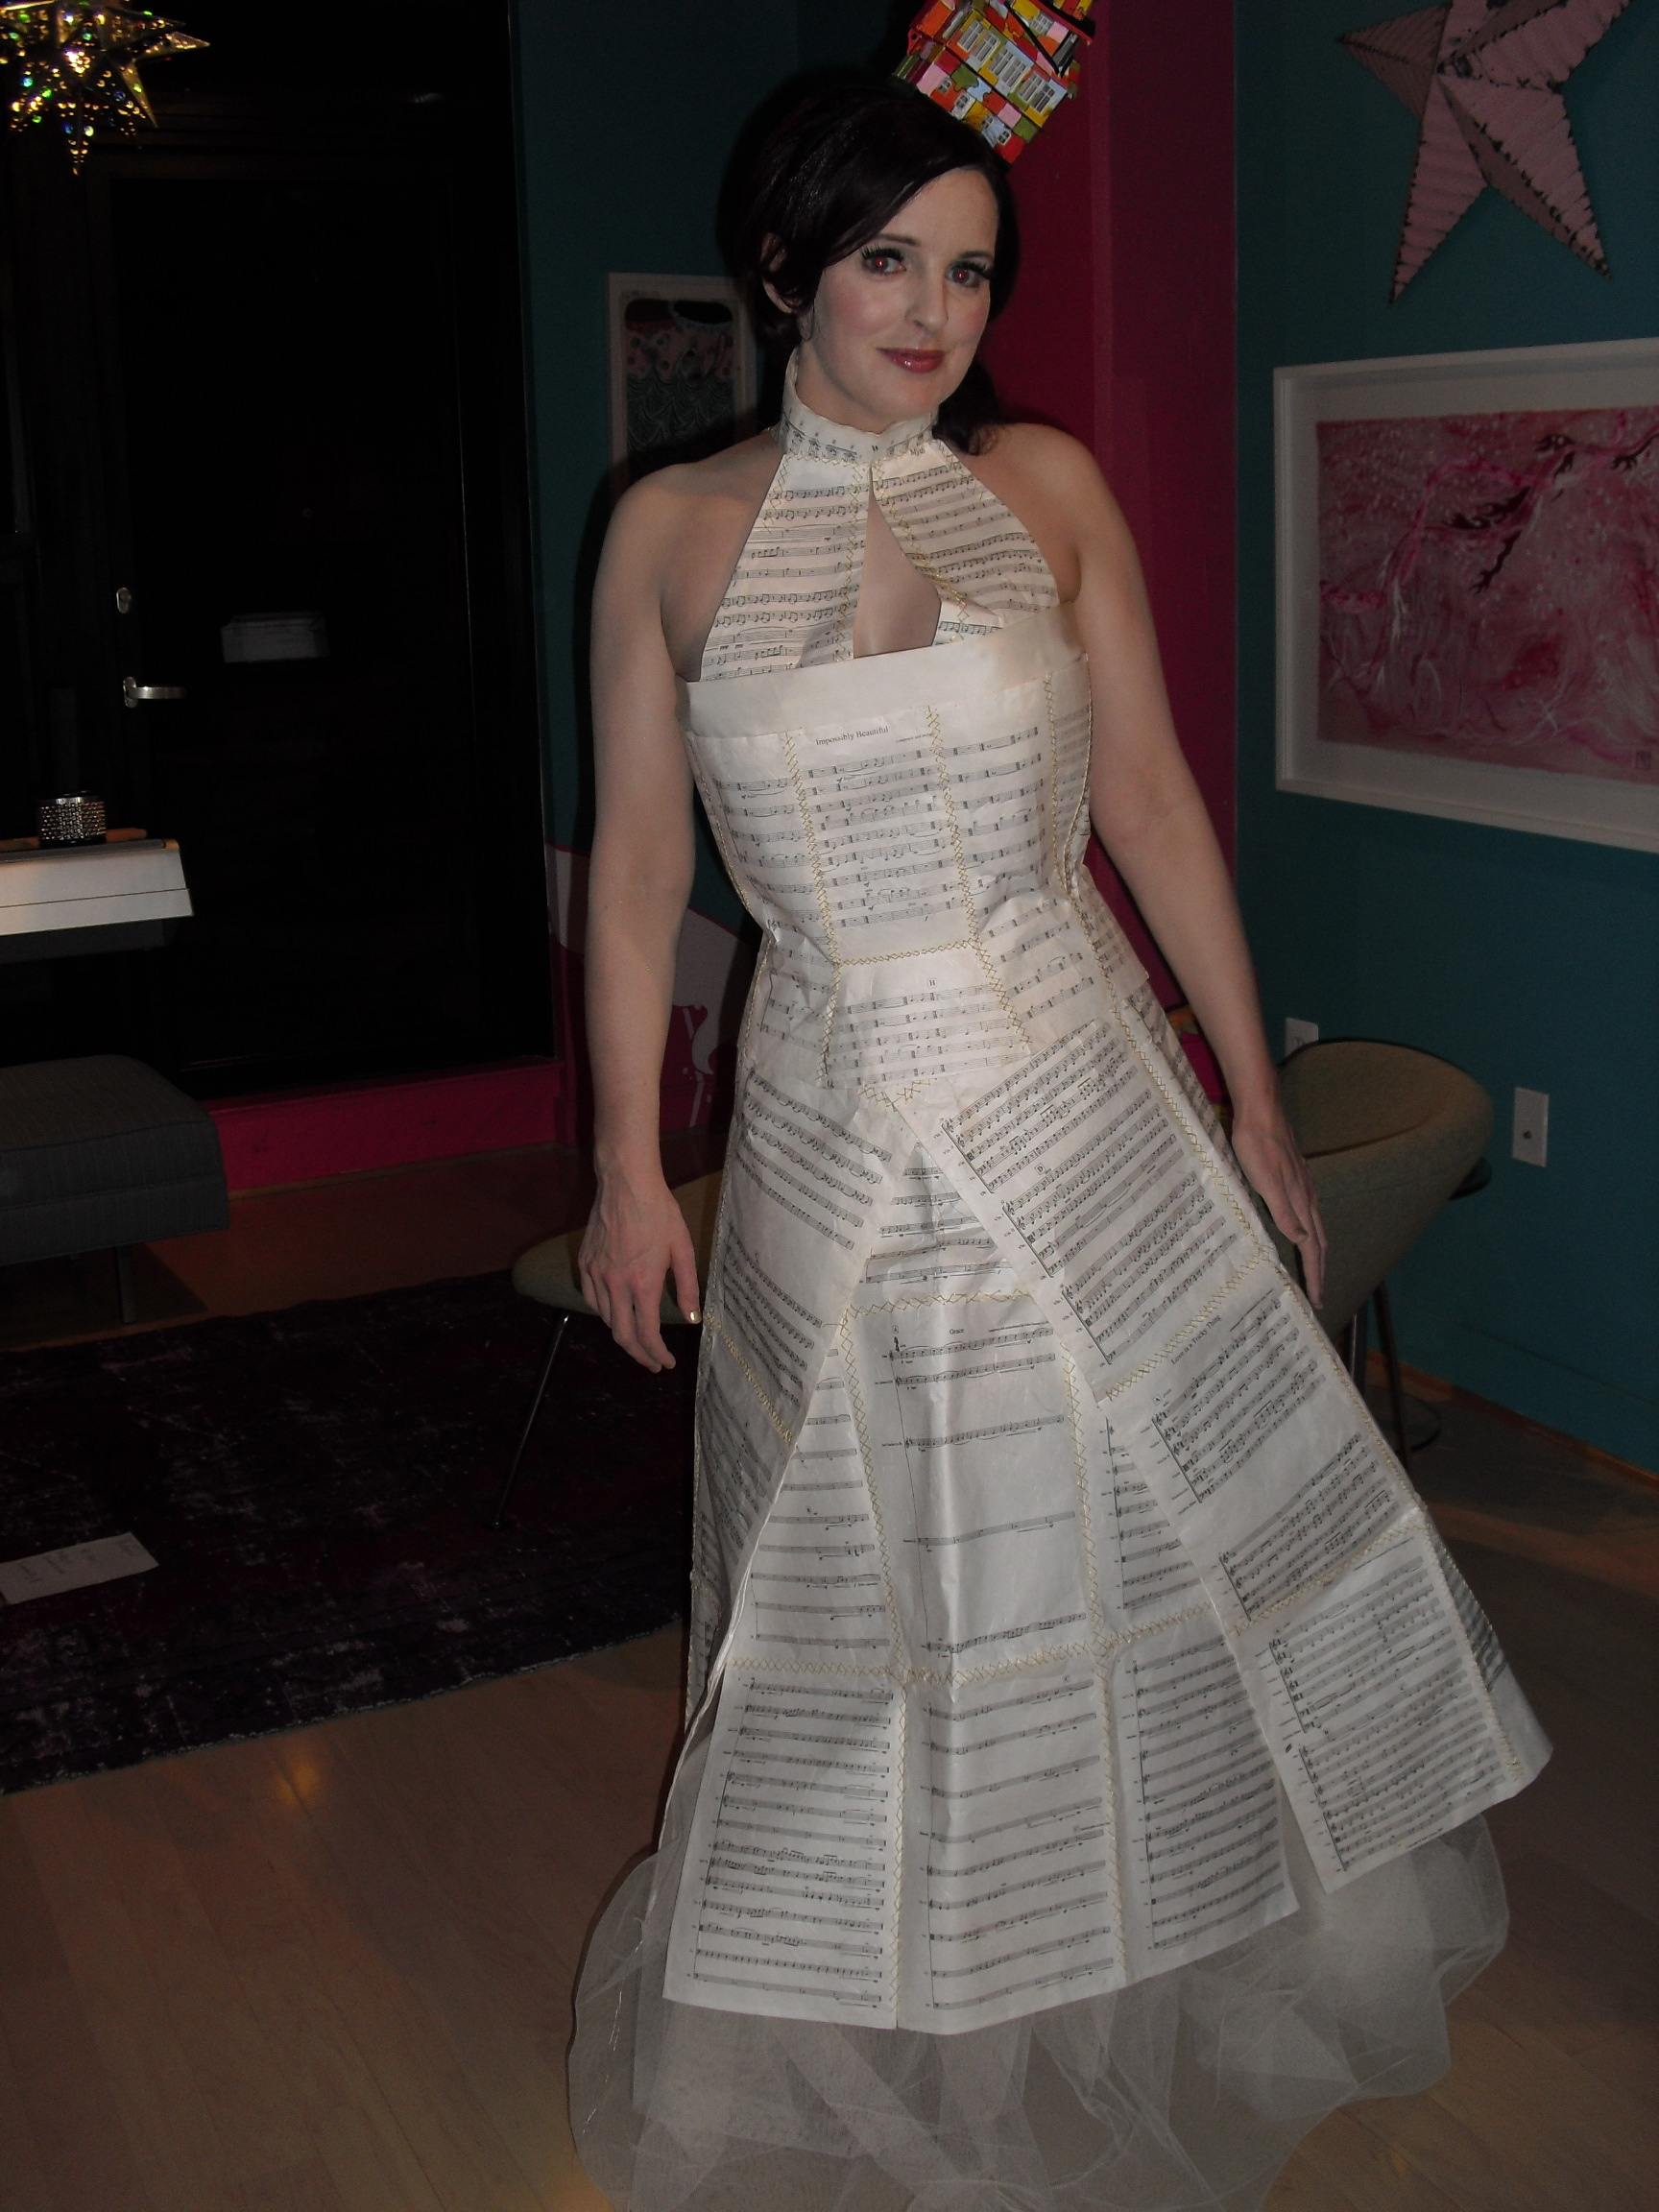 Full Length Picture of Julie Feeney in Sheet Music Dress